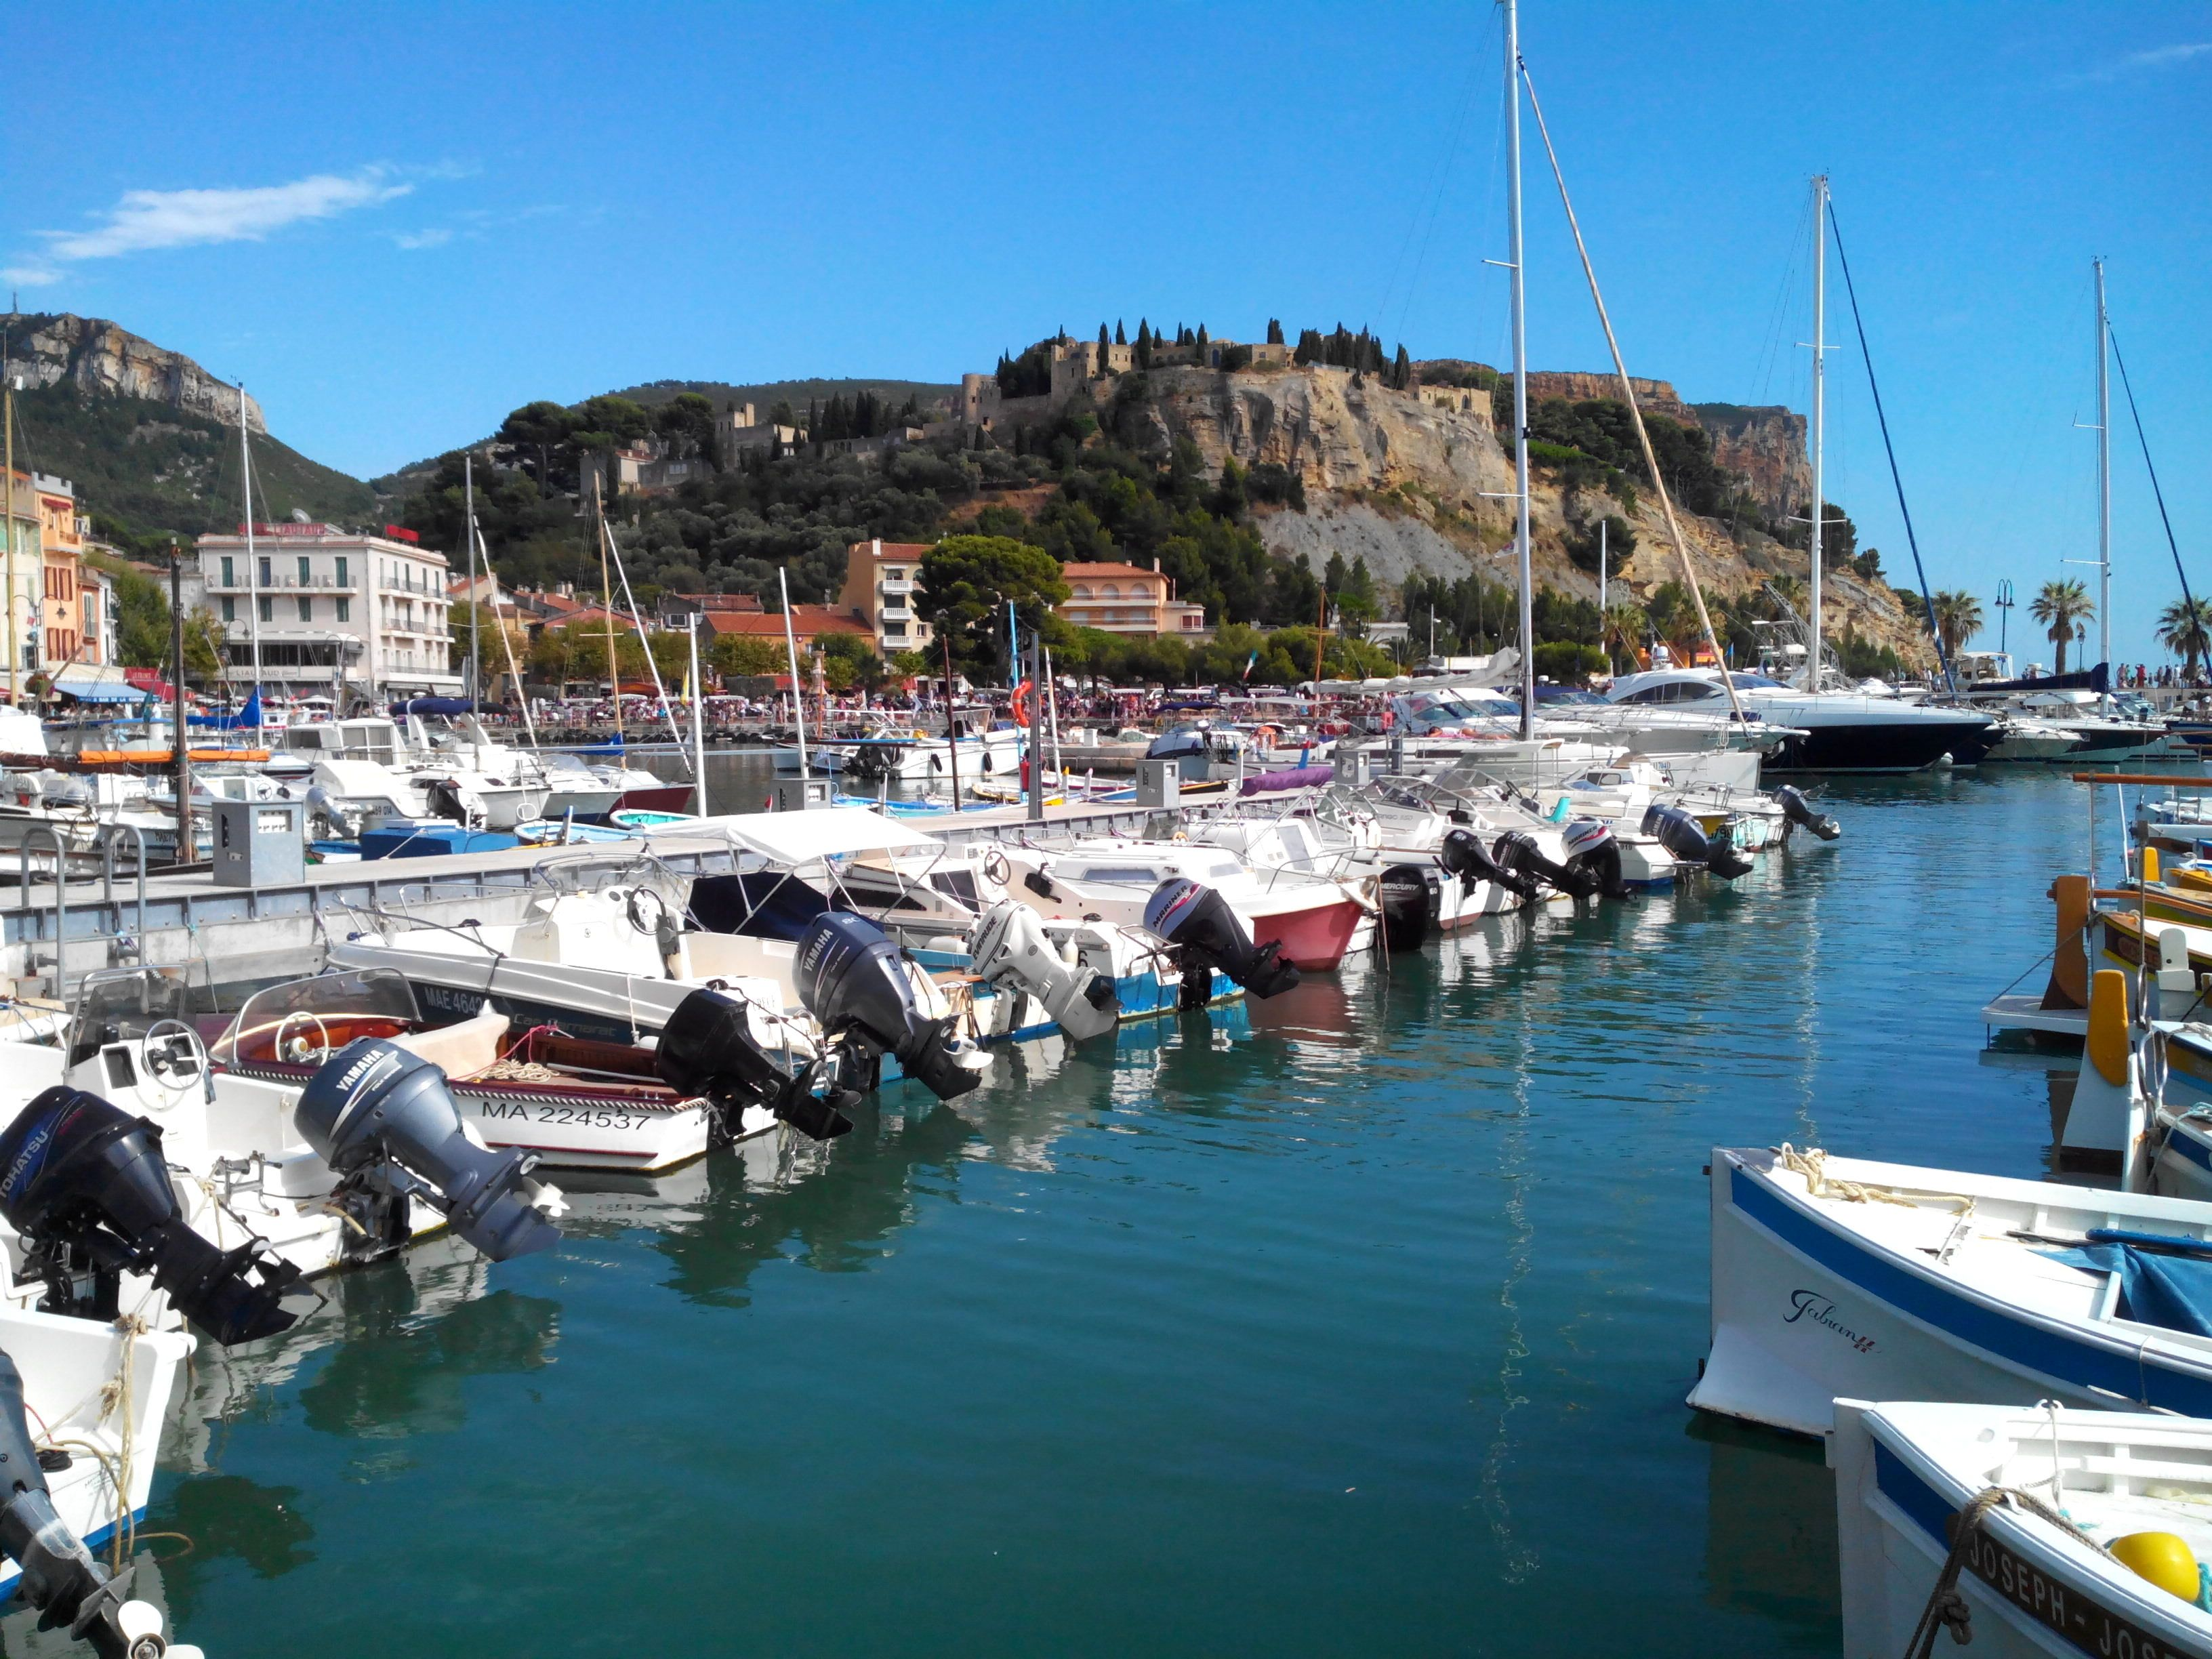 Location Canoe Cassis Cassis Voyage Cassis Pinterest Voyage